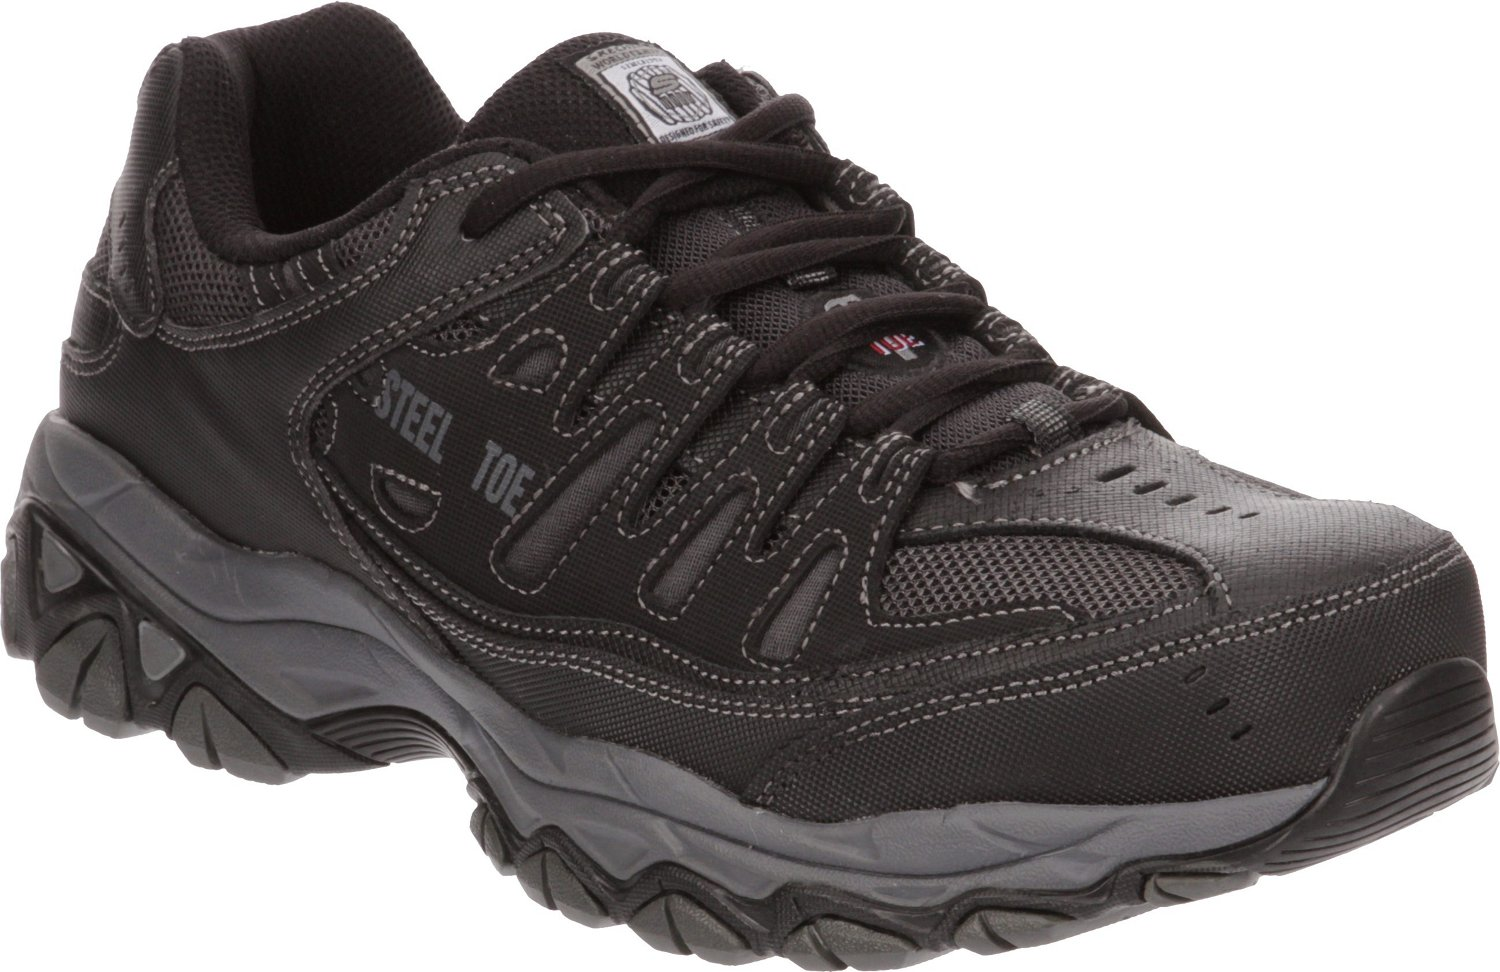 bfcfa0833276e Display product reviews for SKECHERS Men's Relaxed Fit Cankton Lace Steel  Toe Work Shoes